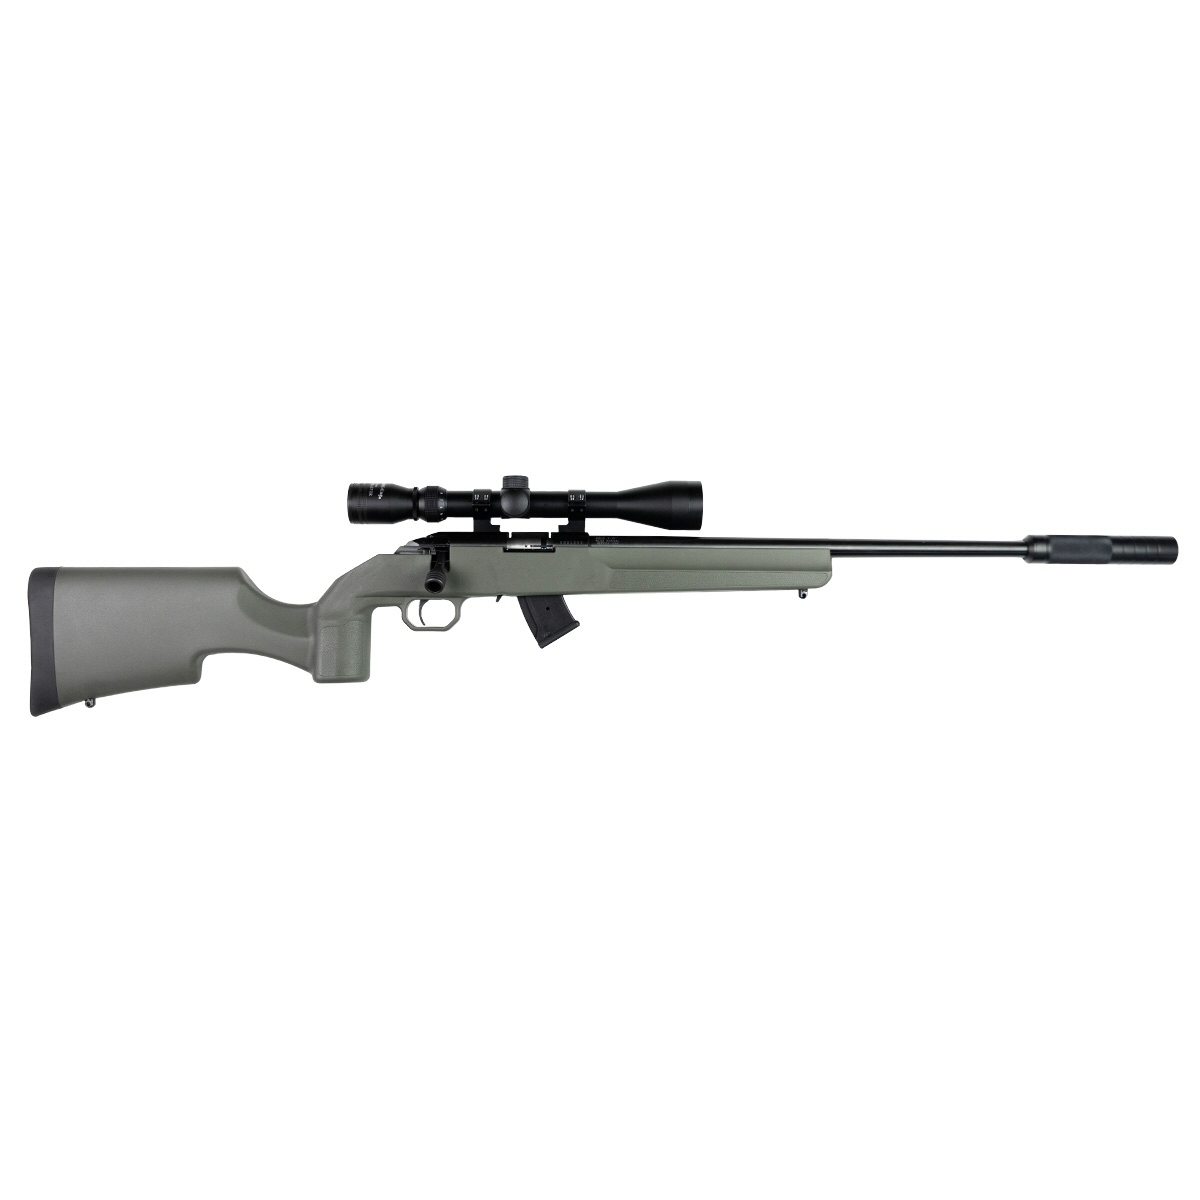 Howa M1100 22WMR Scoped Suppressed Package